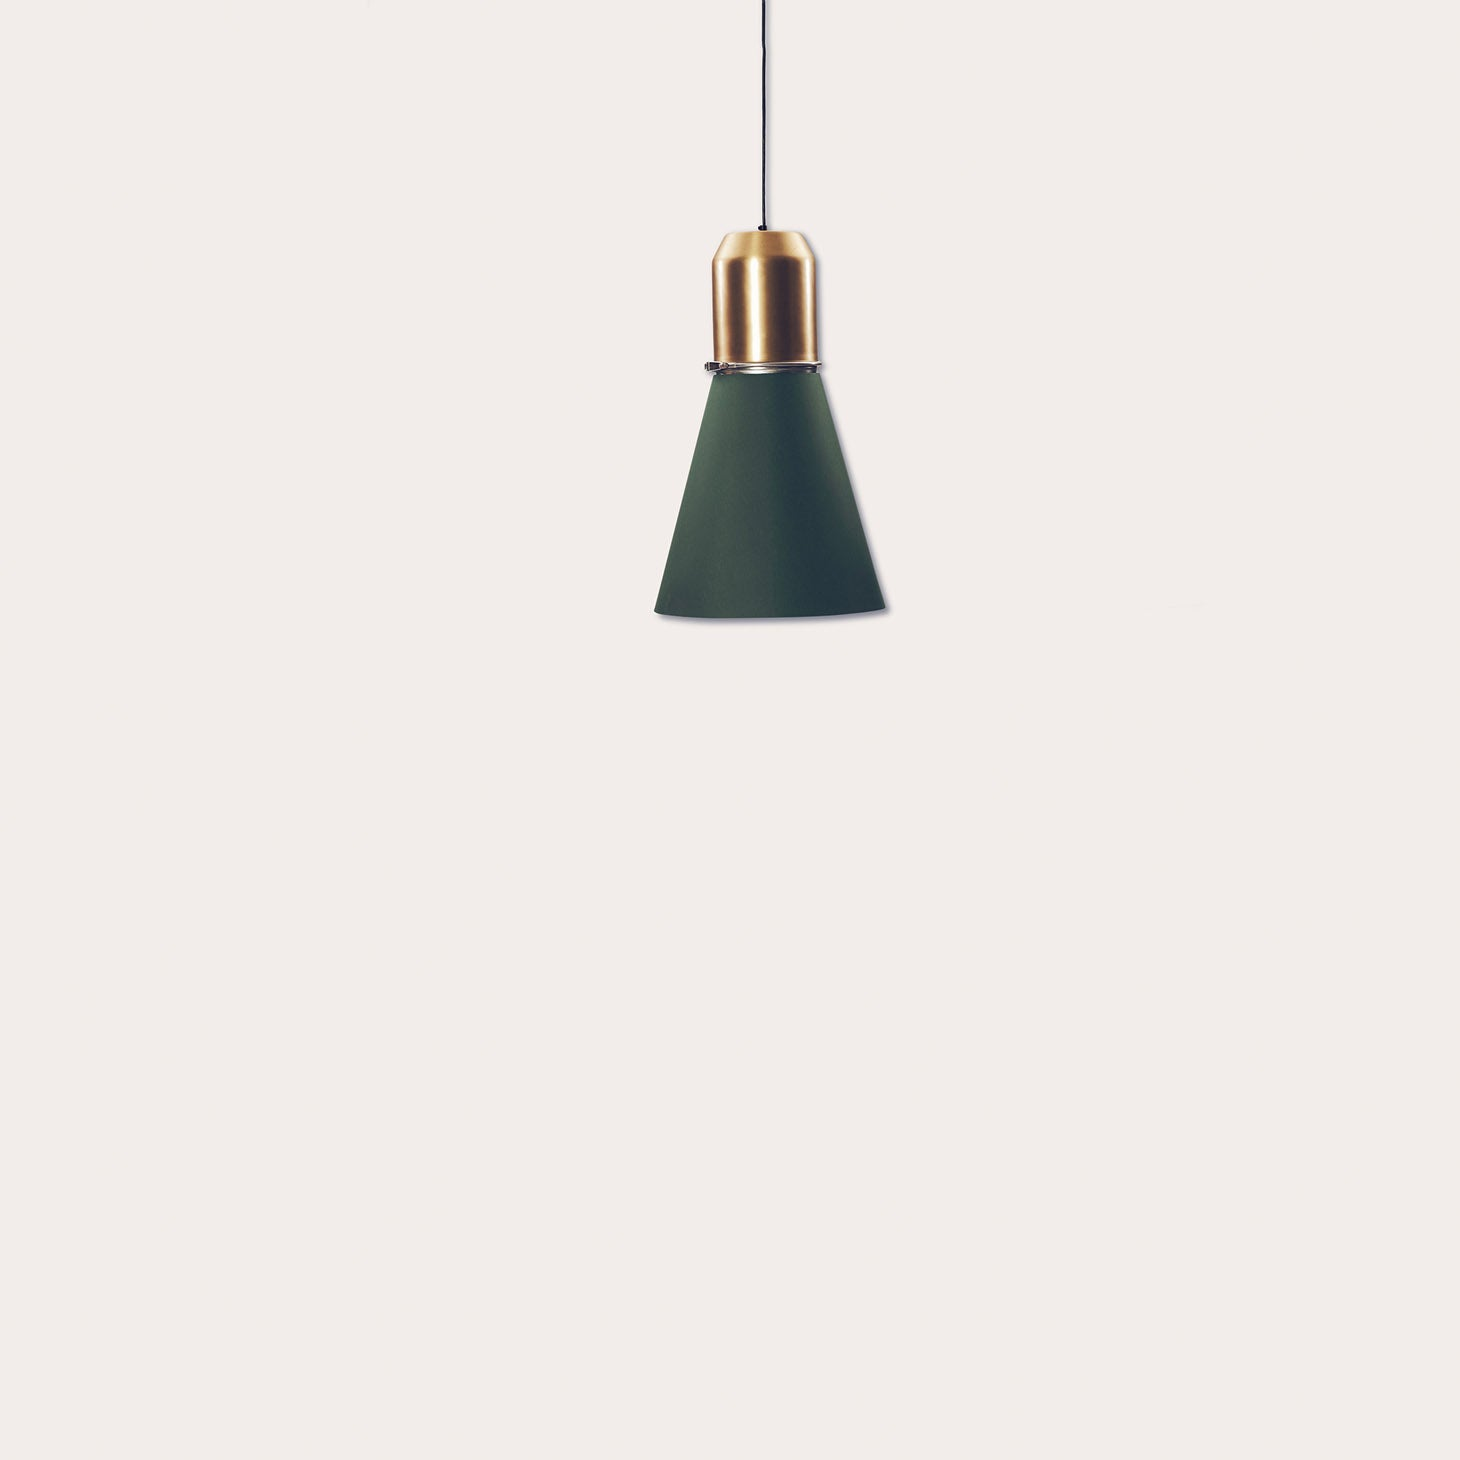 Bell Light Lighting Sebastian Herkner Designer Furniture Sku: 001-160-10075